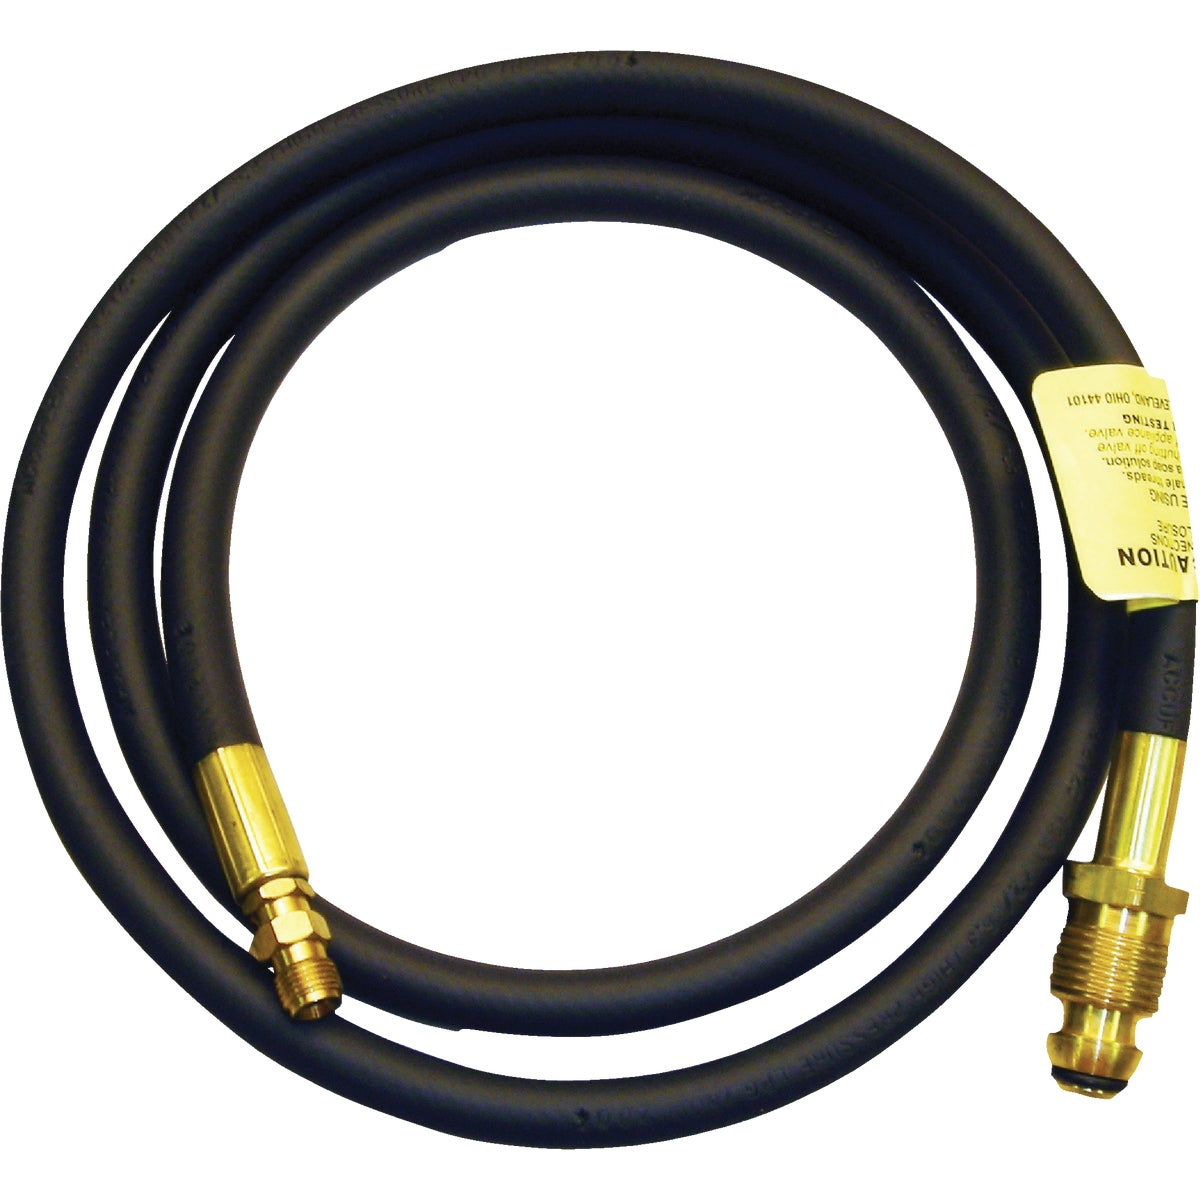 3' PROPANE HOSE ASSEMBLY